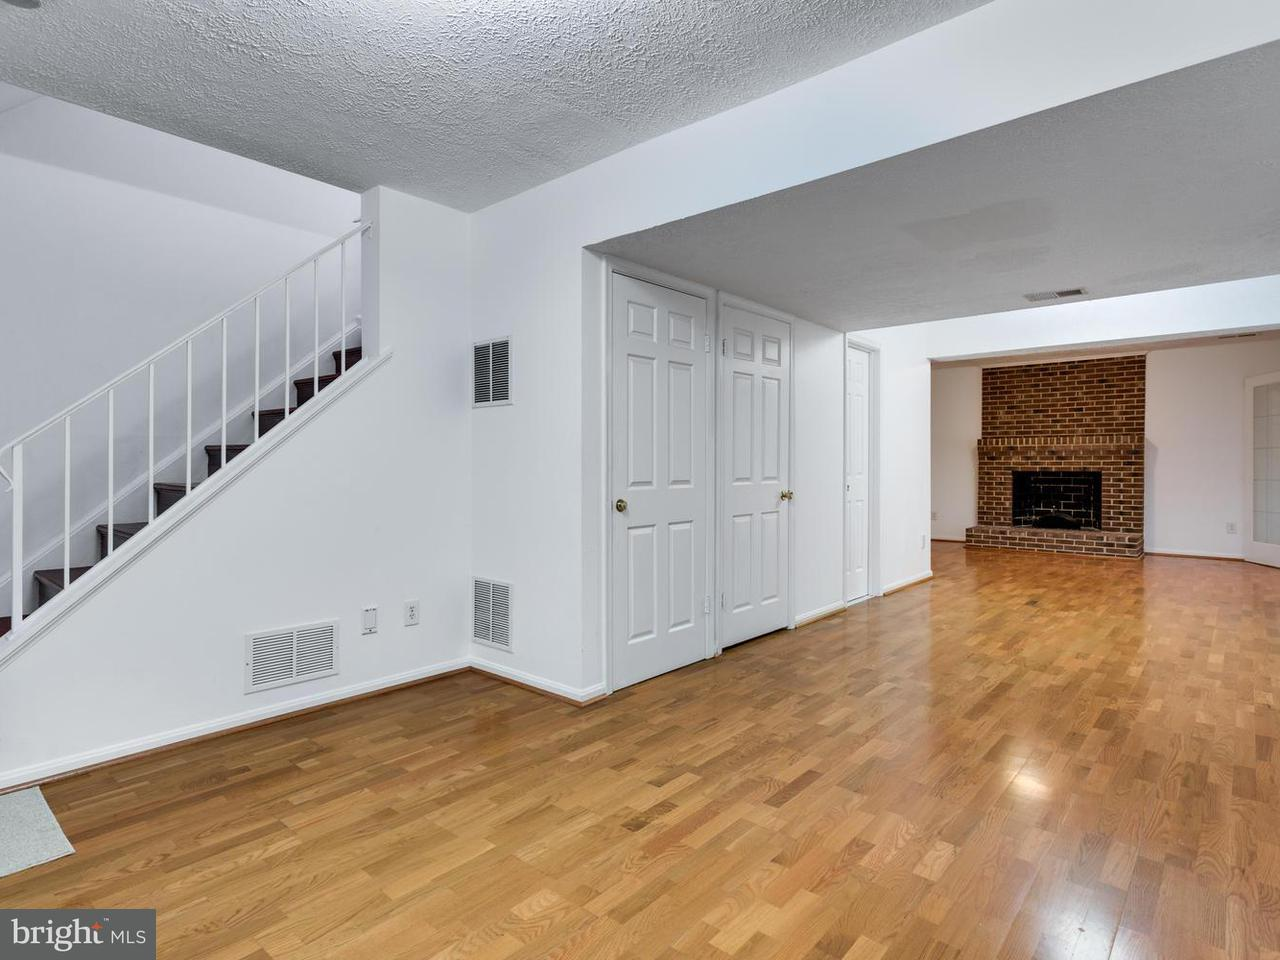 Additional photo for property listing at 6860 Chelsea Road 6860 Chelsea Road McLean, Virginia 22101 United States